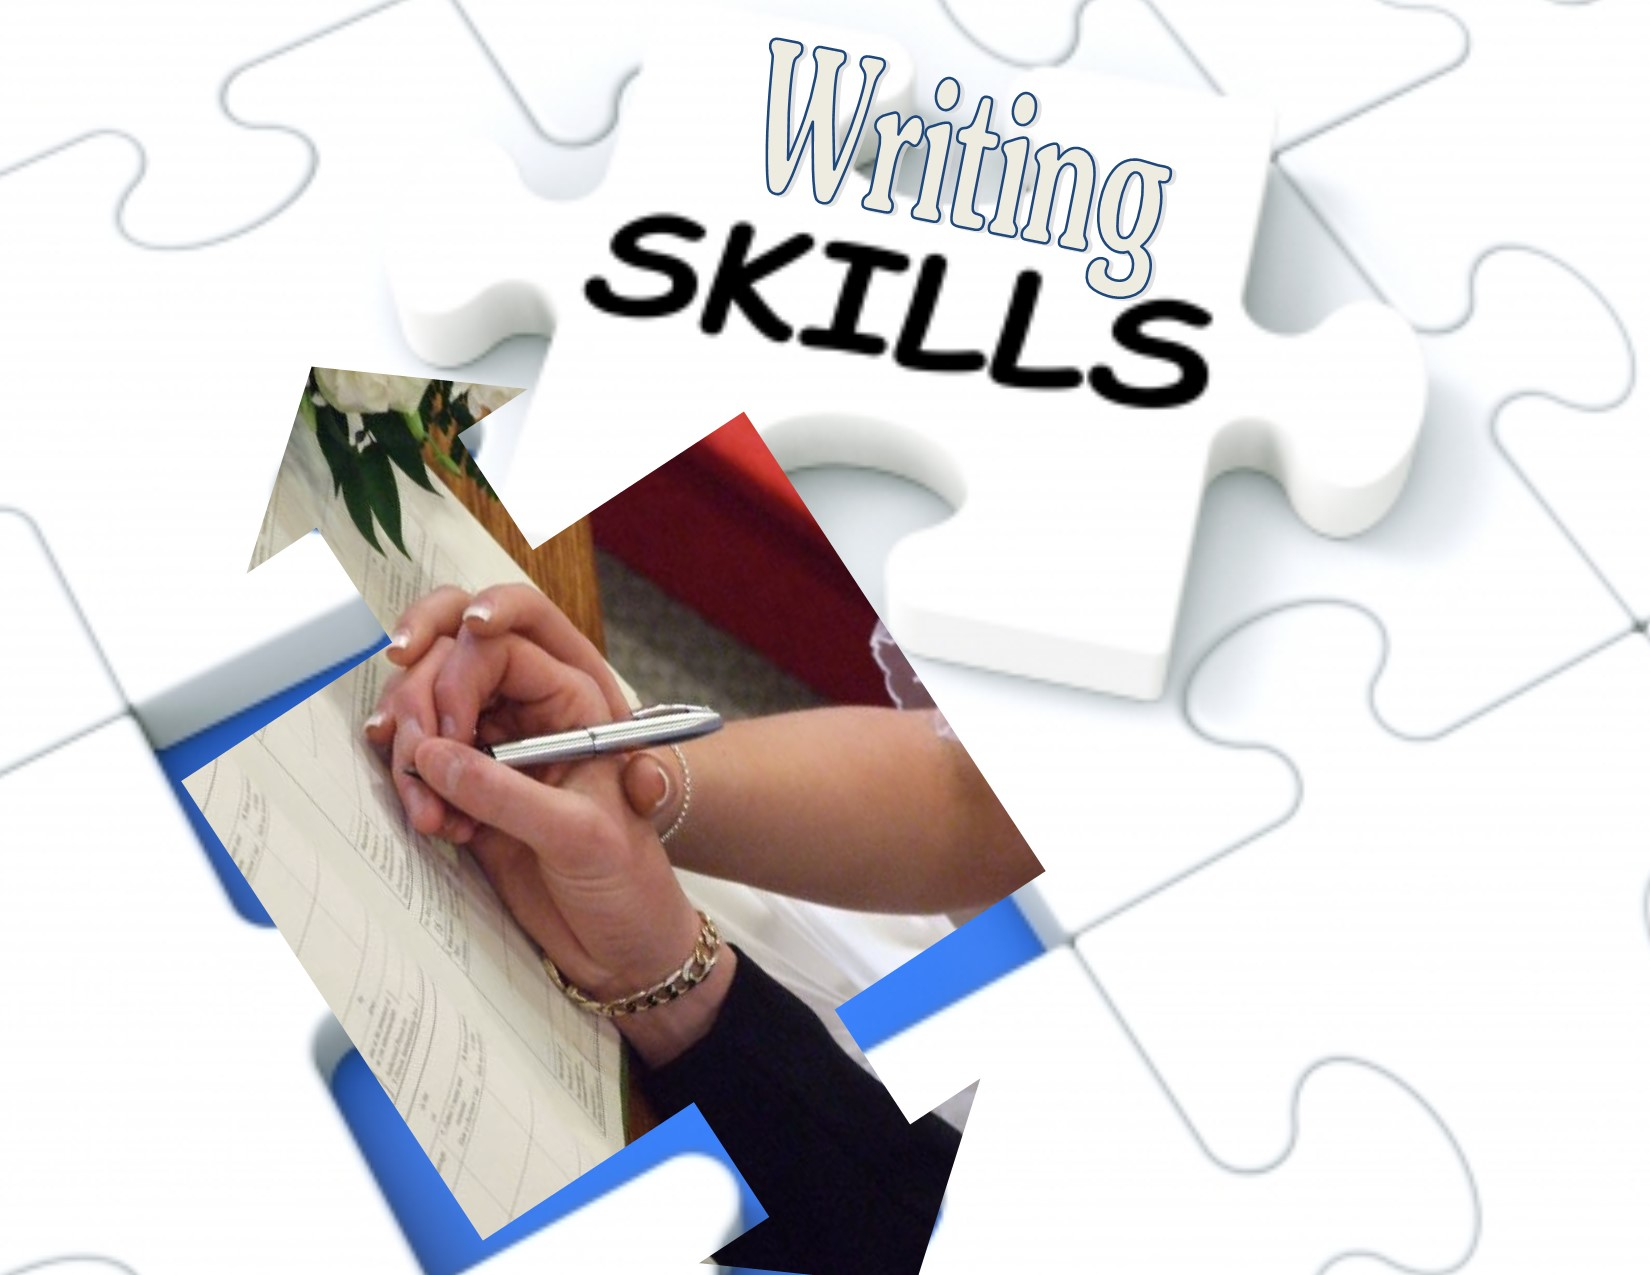 skills in writing Writing skills when children learn how to write, a whole world of possibilities opens up for them they can put their thoughts down in a journal, write a letter to a friend, and create a story that comes from their imagination.